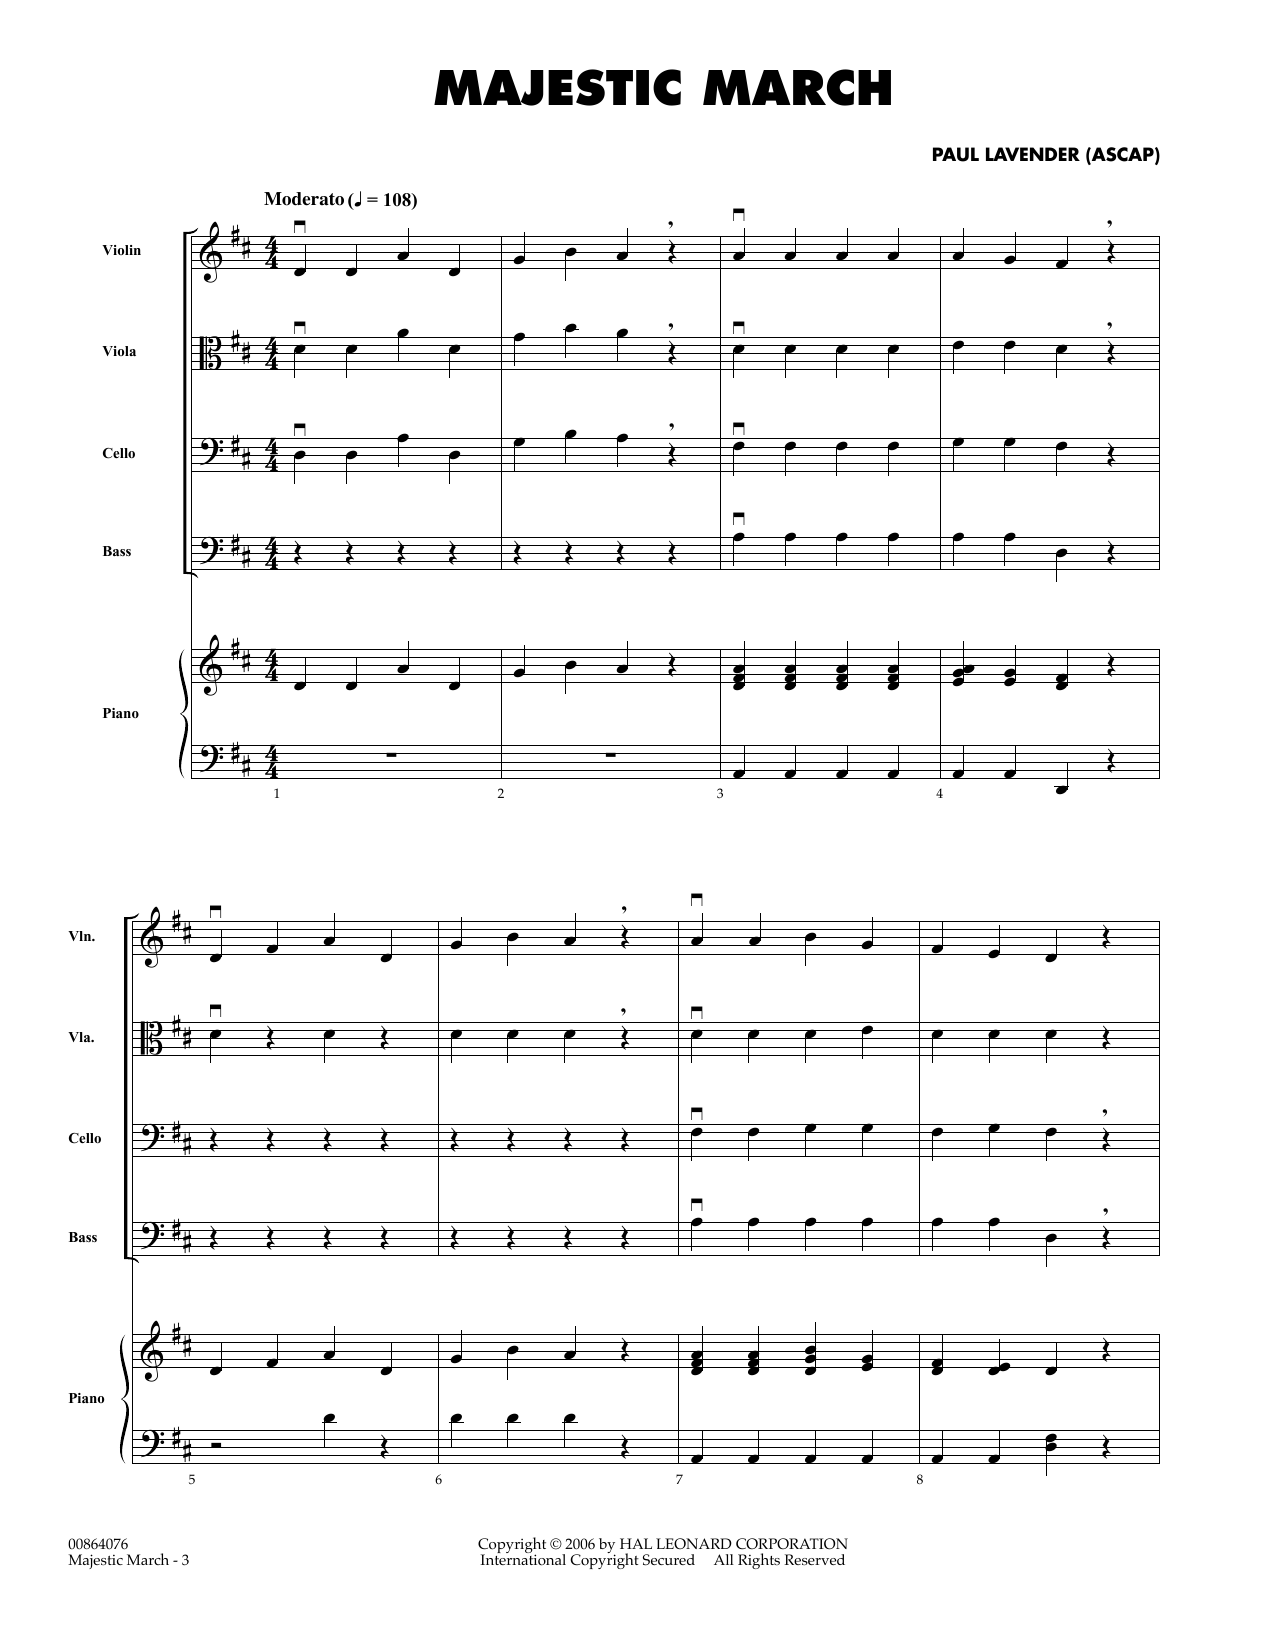 Paul Lavender Majestic March - Full Score sheet music preview music notes and score for Orchestra including 5 page(s)